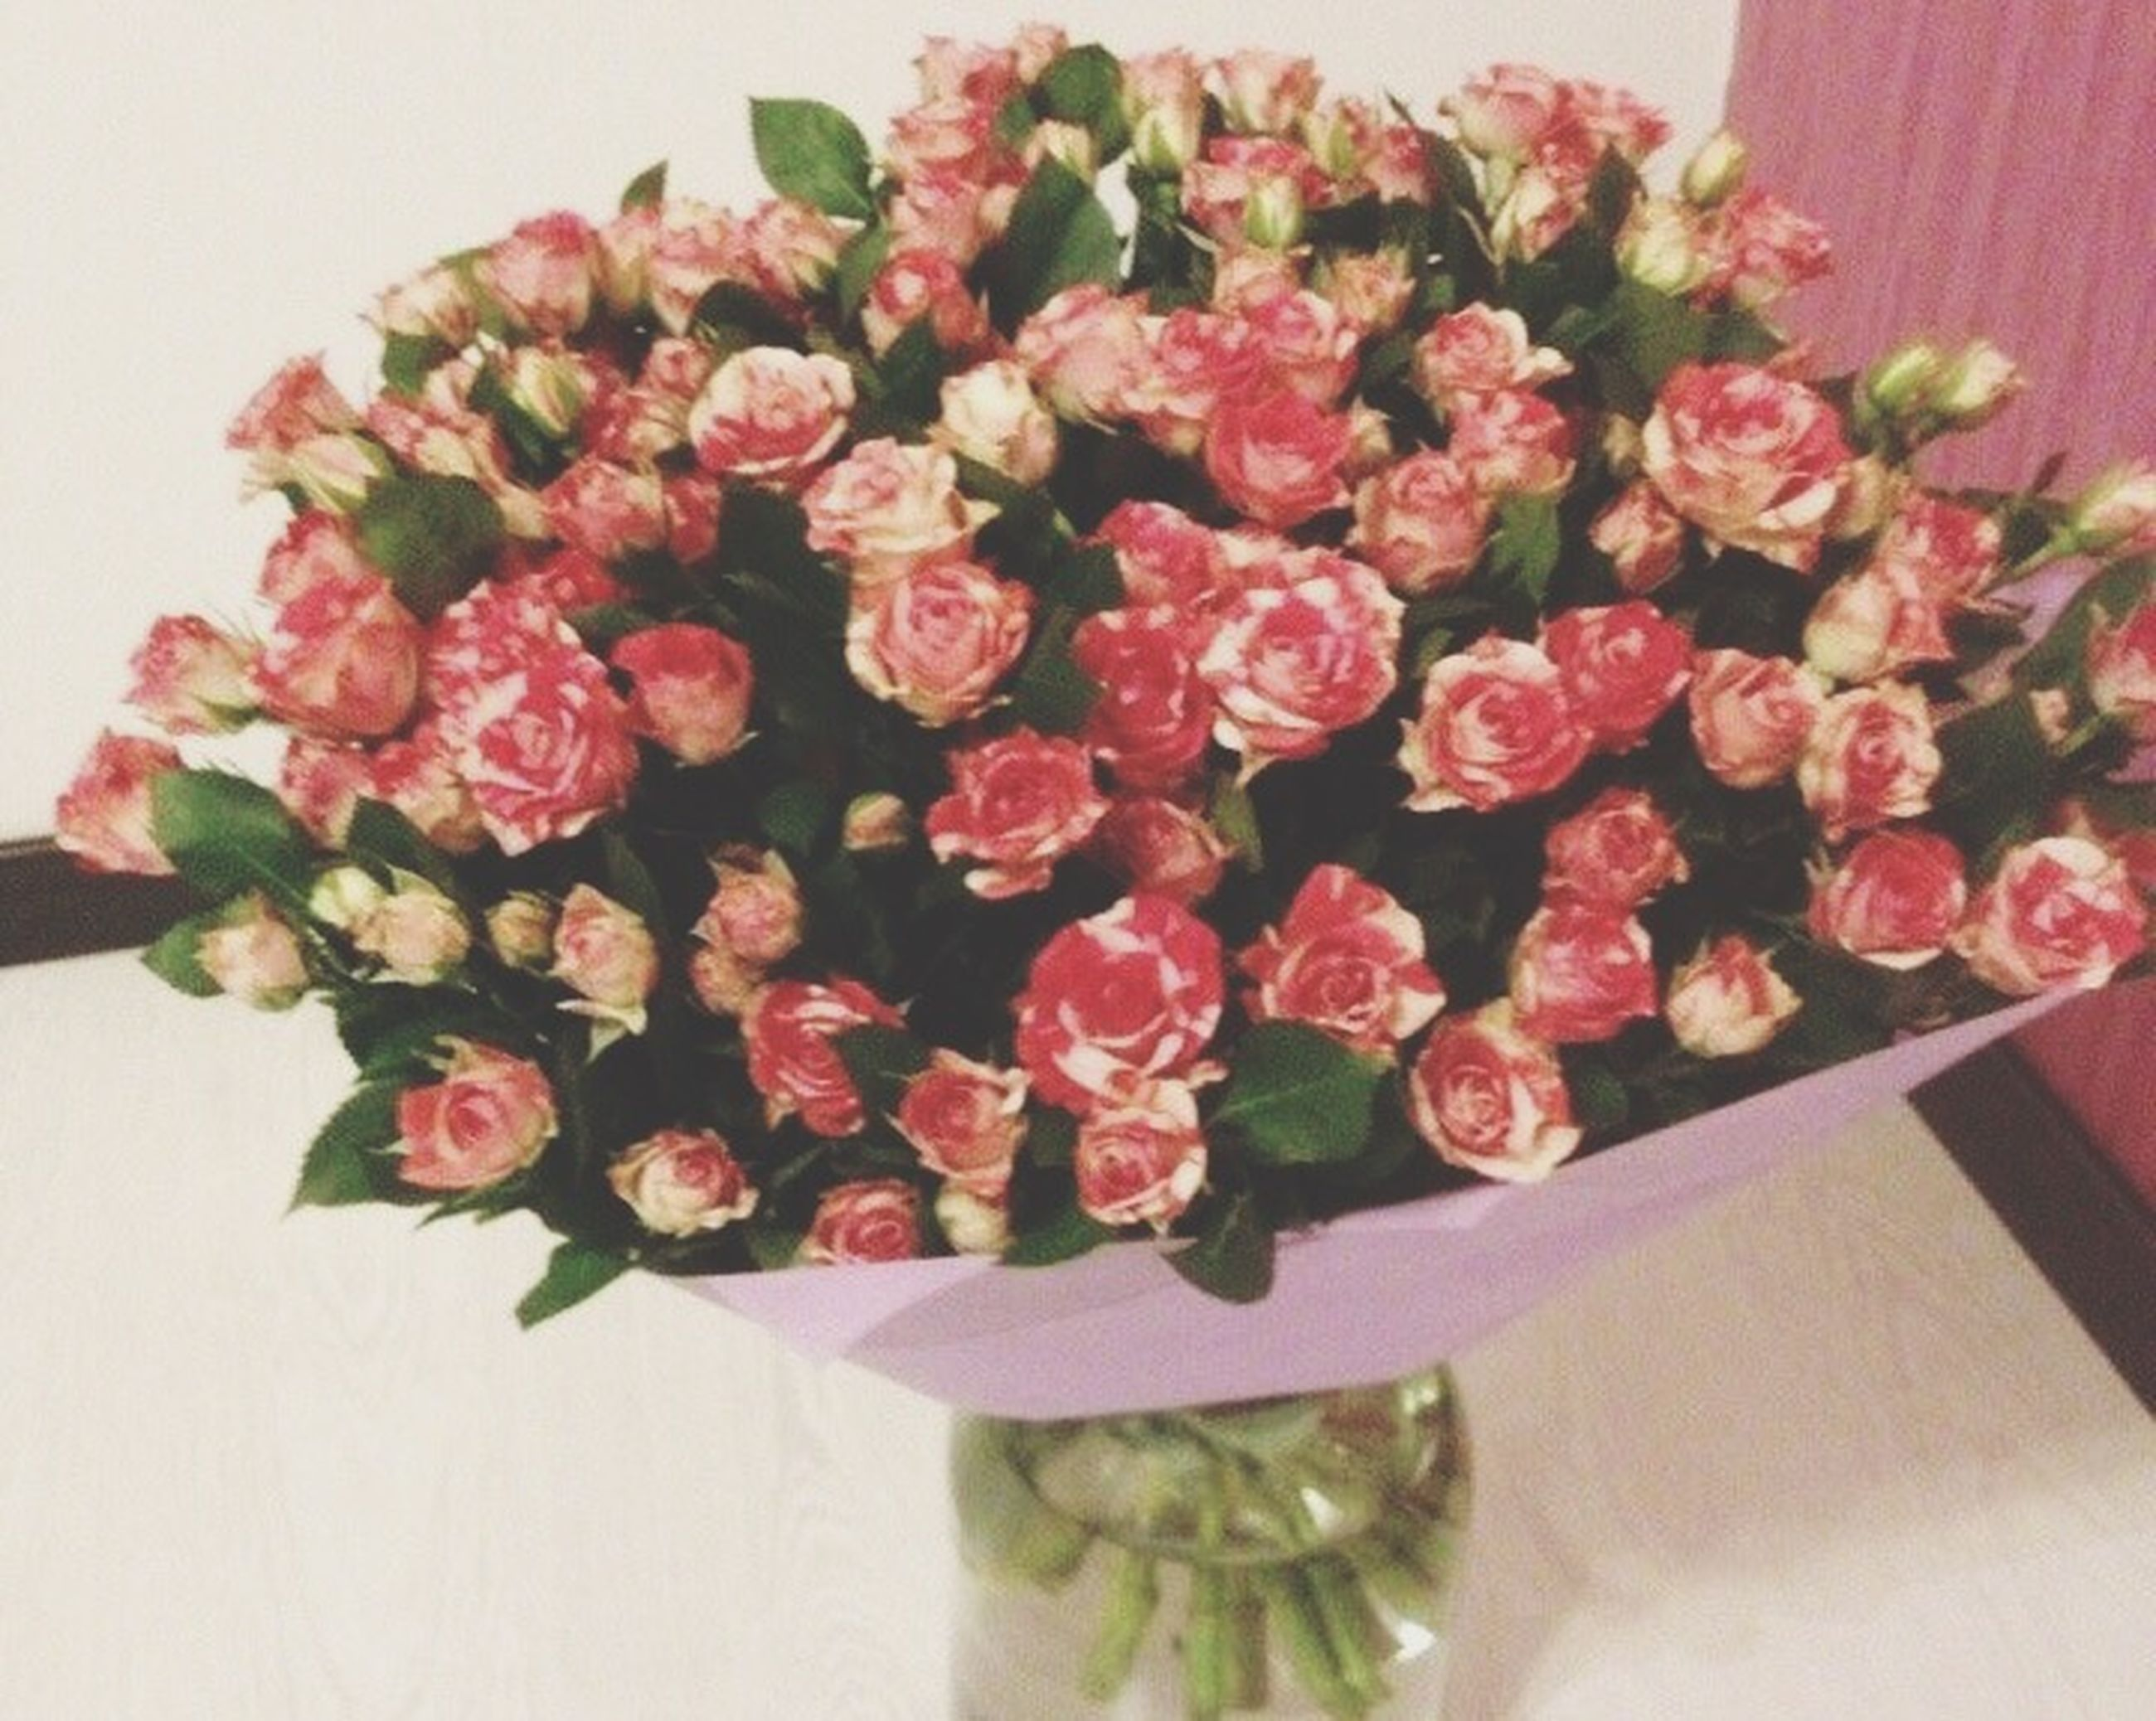 indoors, flower, freshness, table, decoration, vase, still life, home interior, close-up, bouquet, fragility, petal, flower arrangement, high angle view, no people, bunch of flowers, wall - building feature, red, pink color, variation